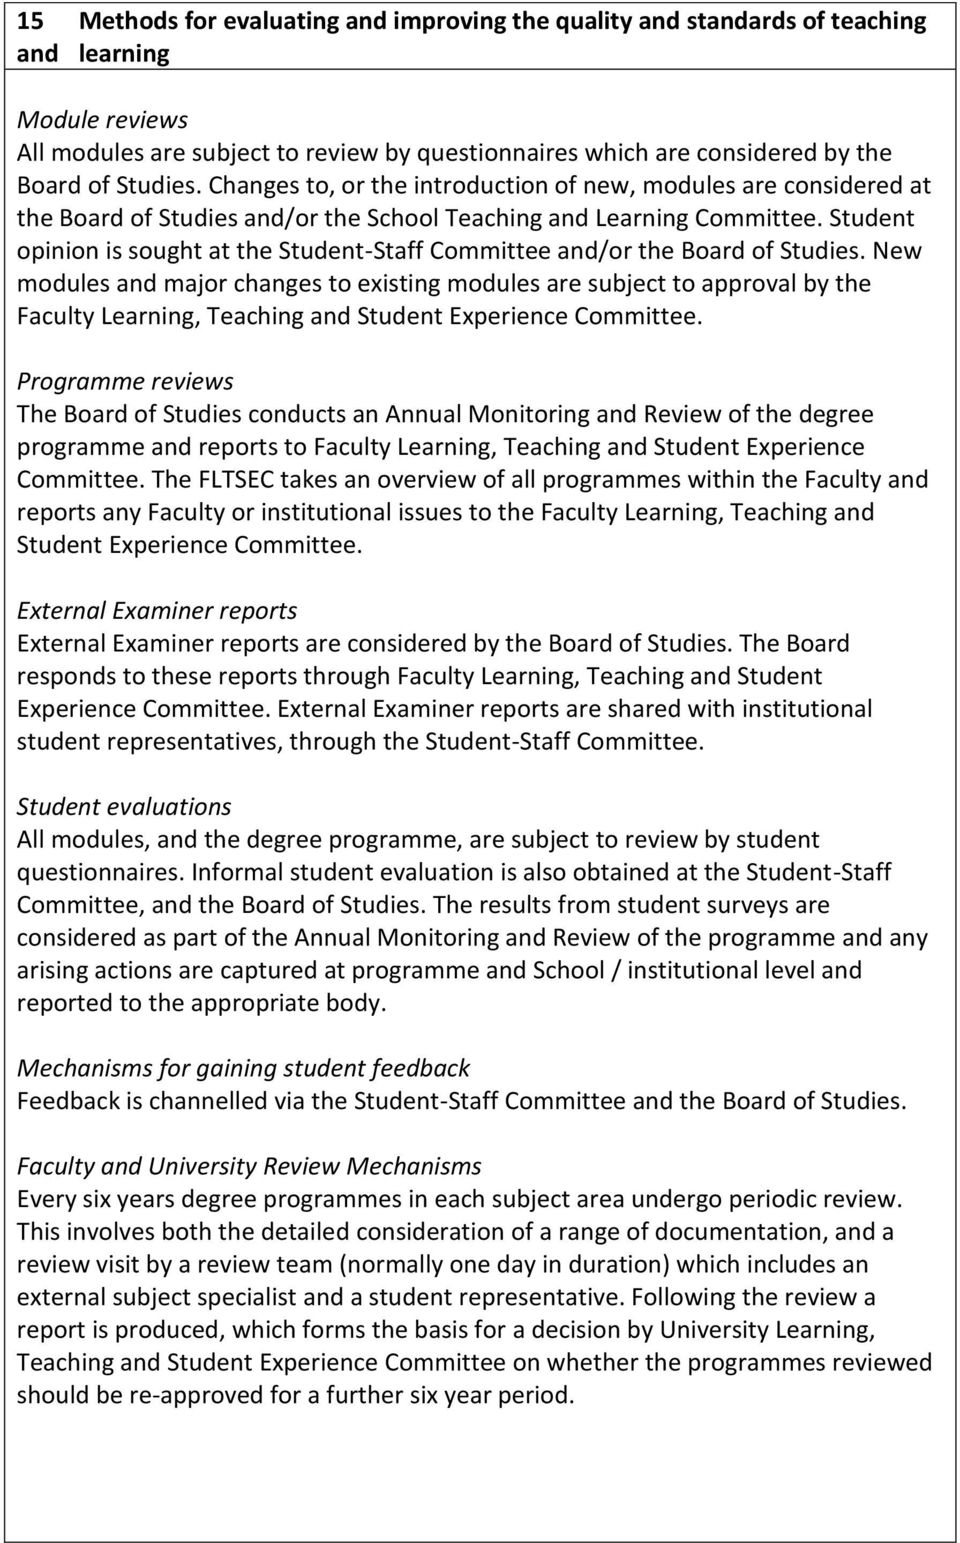 Student opinion is sought at the Student-Staff Committee and/or the Board of Studies.